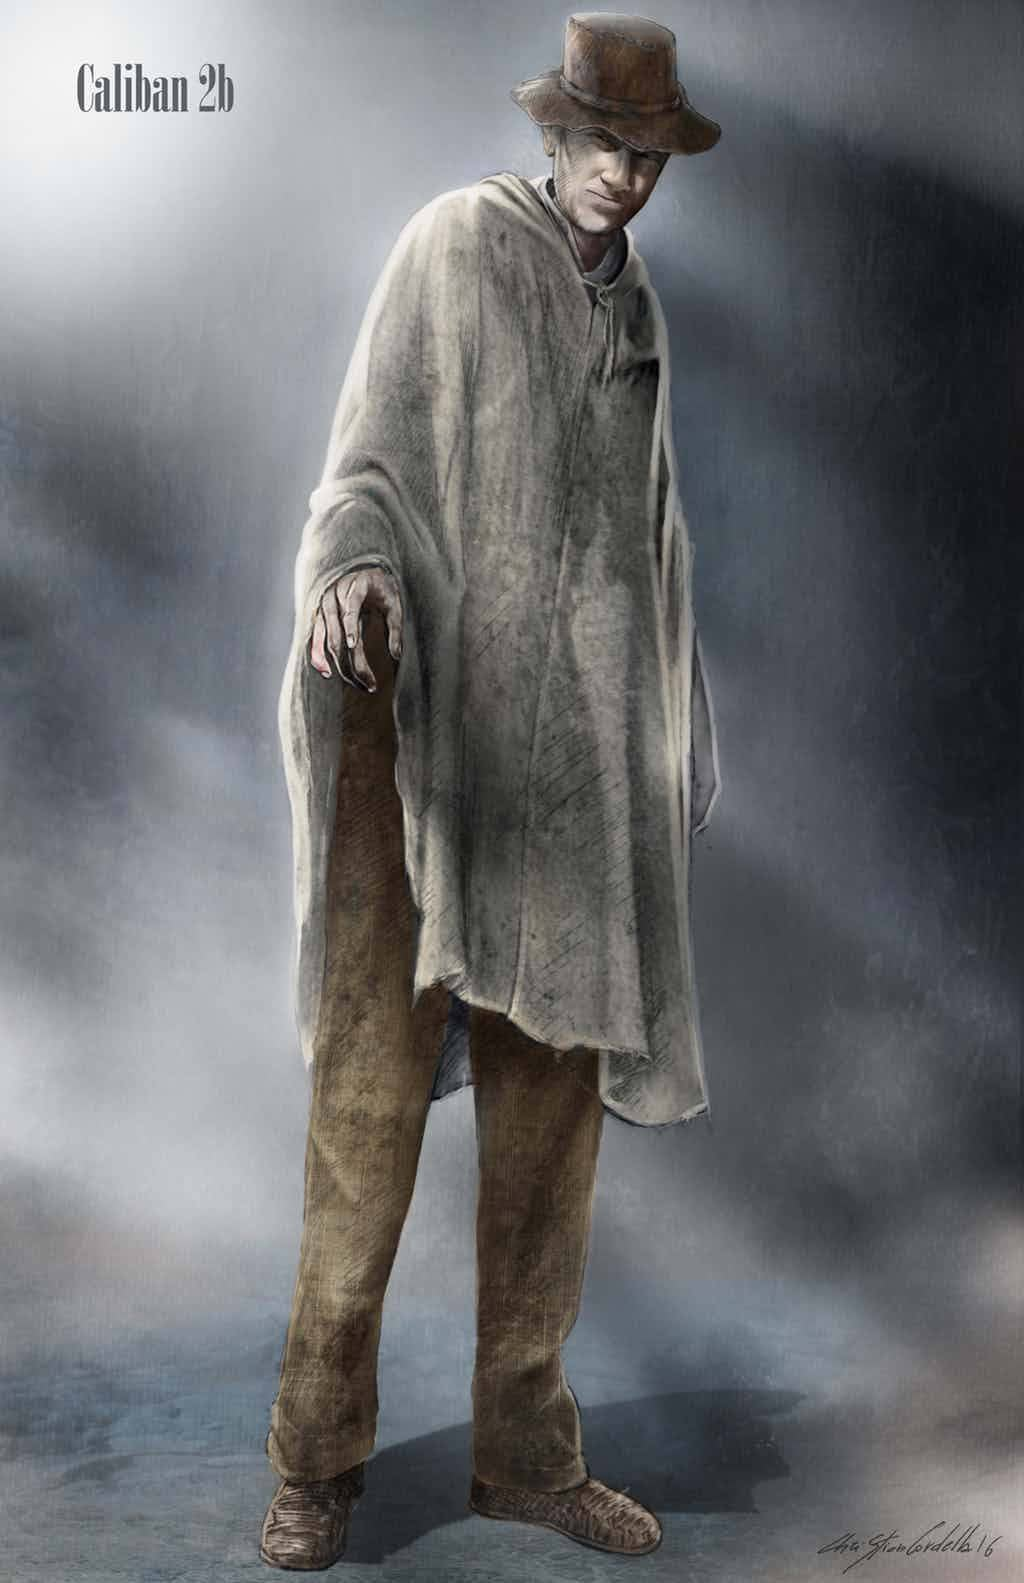 Logan-Concept-Art-Caliban-l